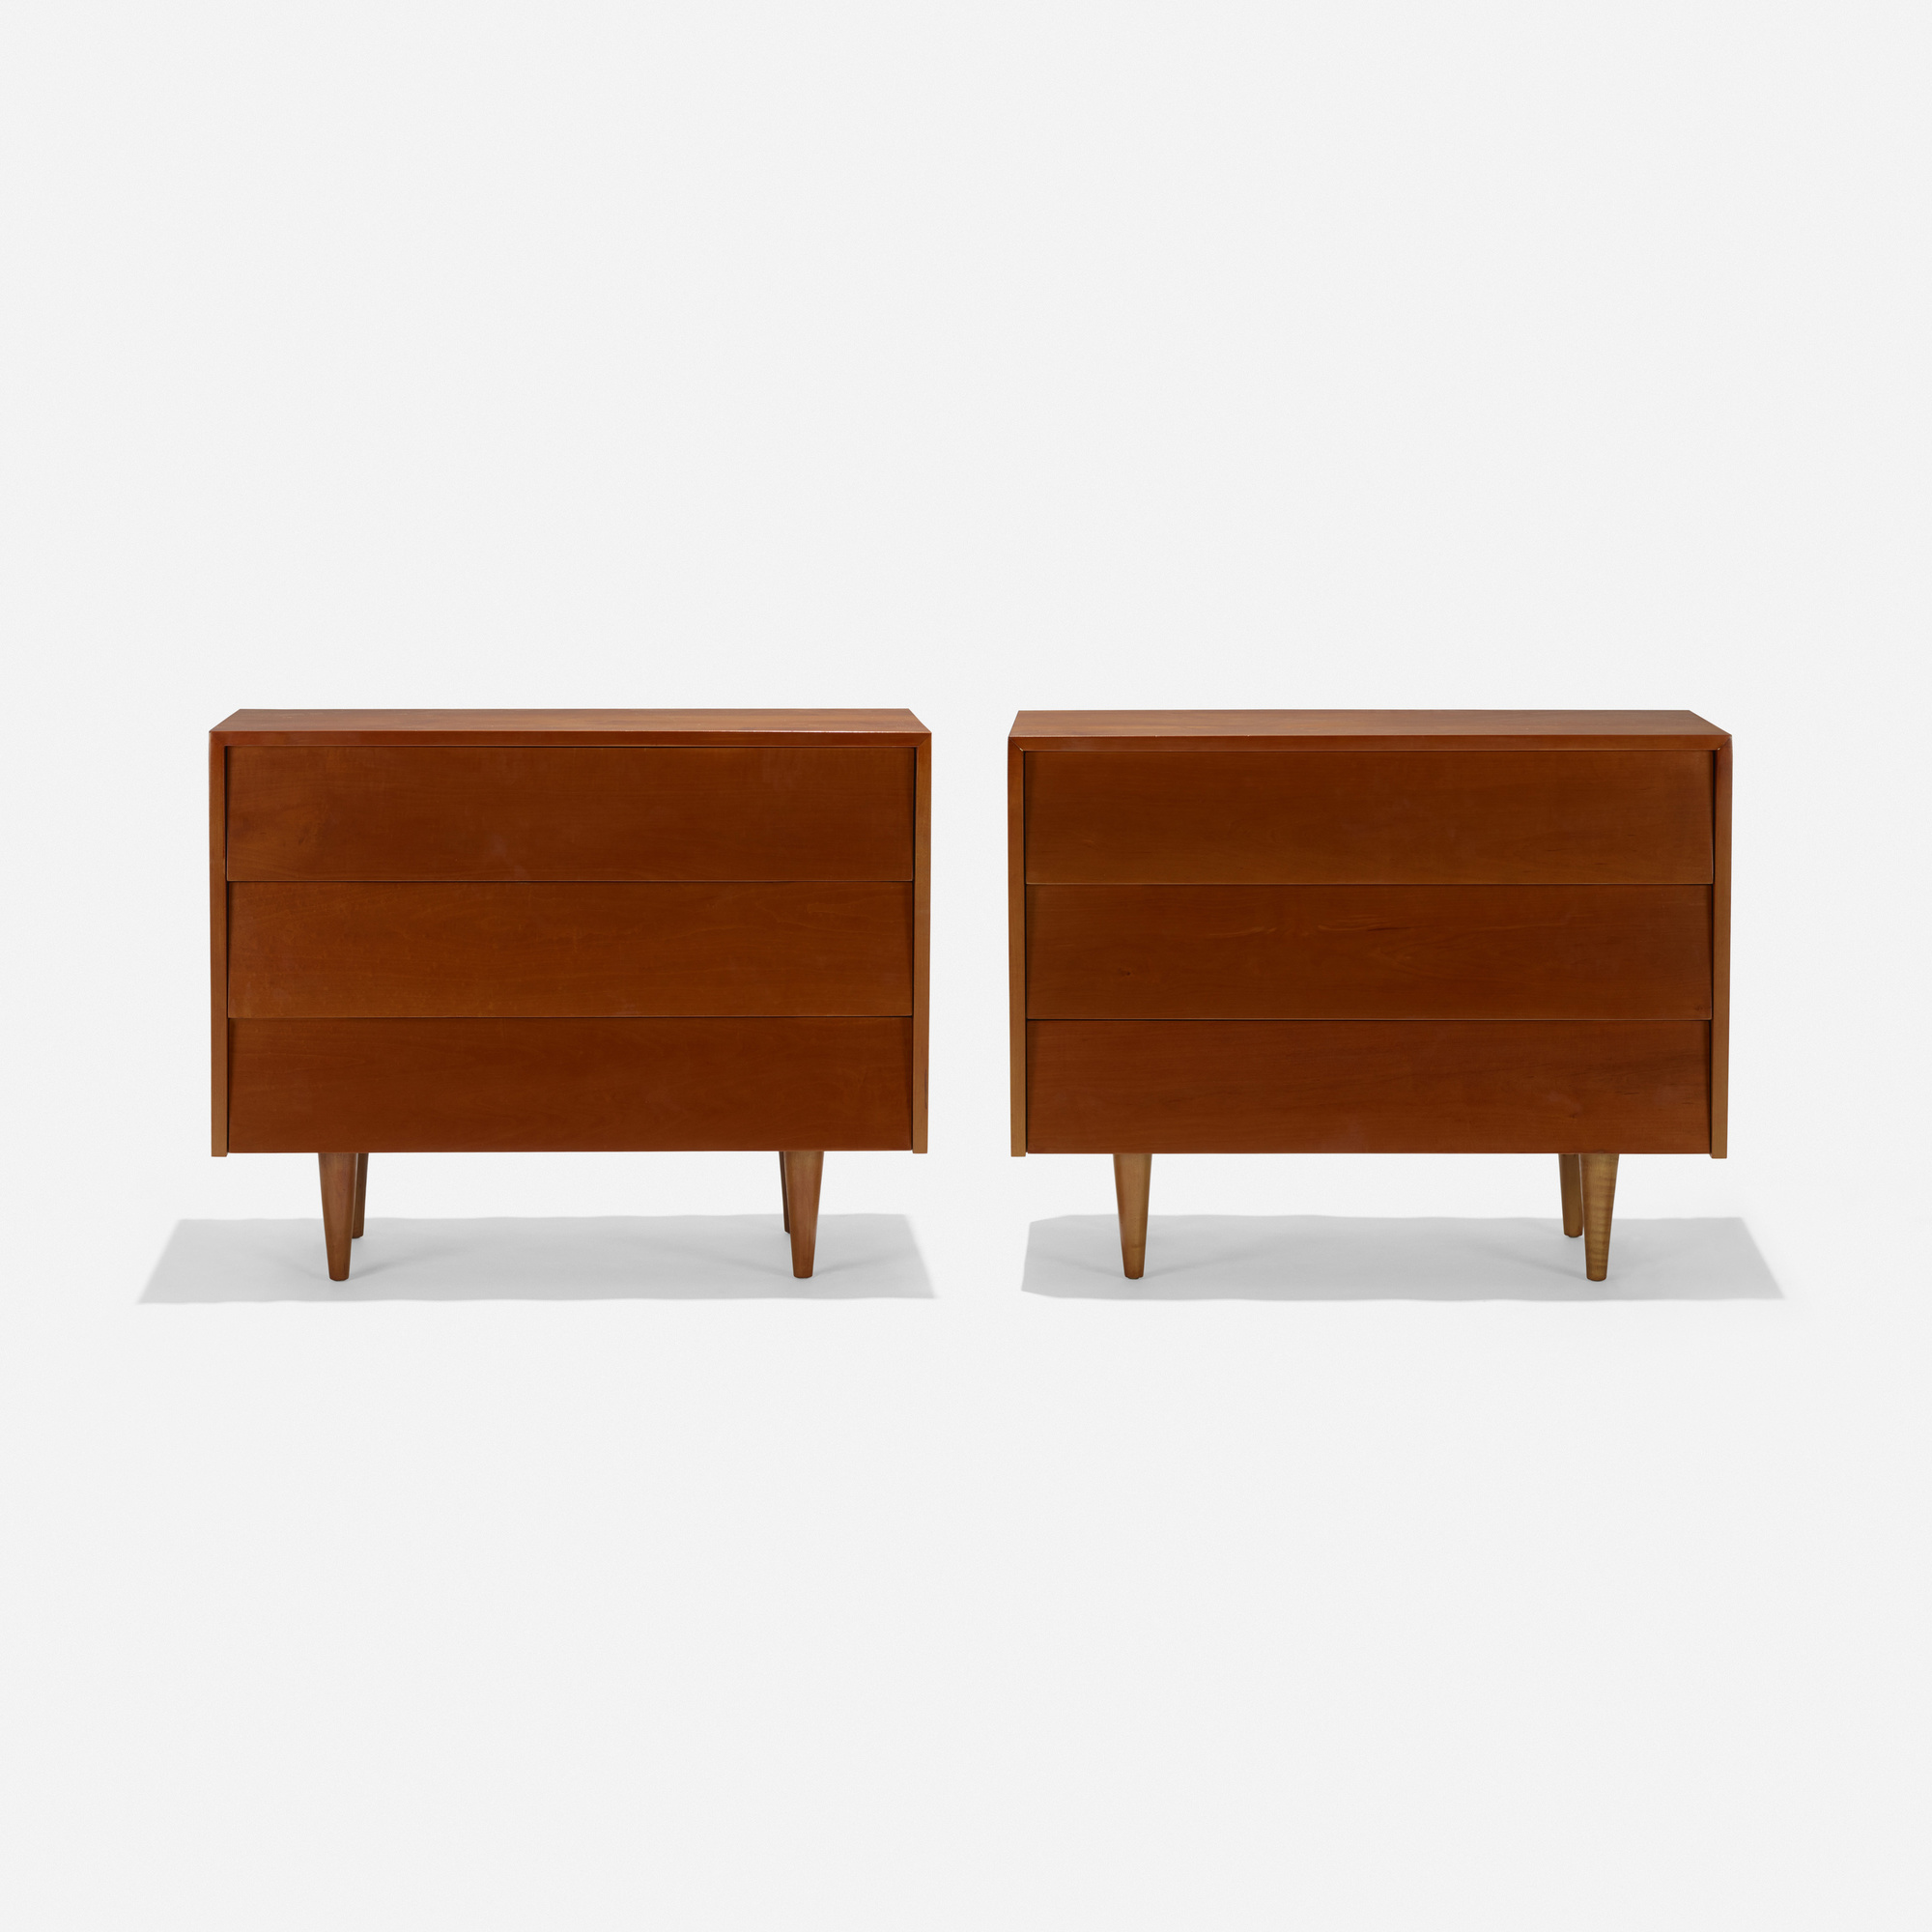 225: Florence Knoll / cabinets, pair (1 of 3)